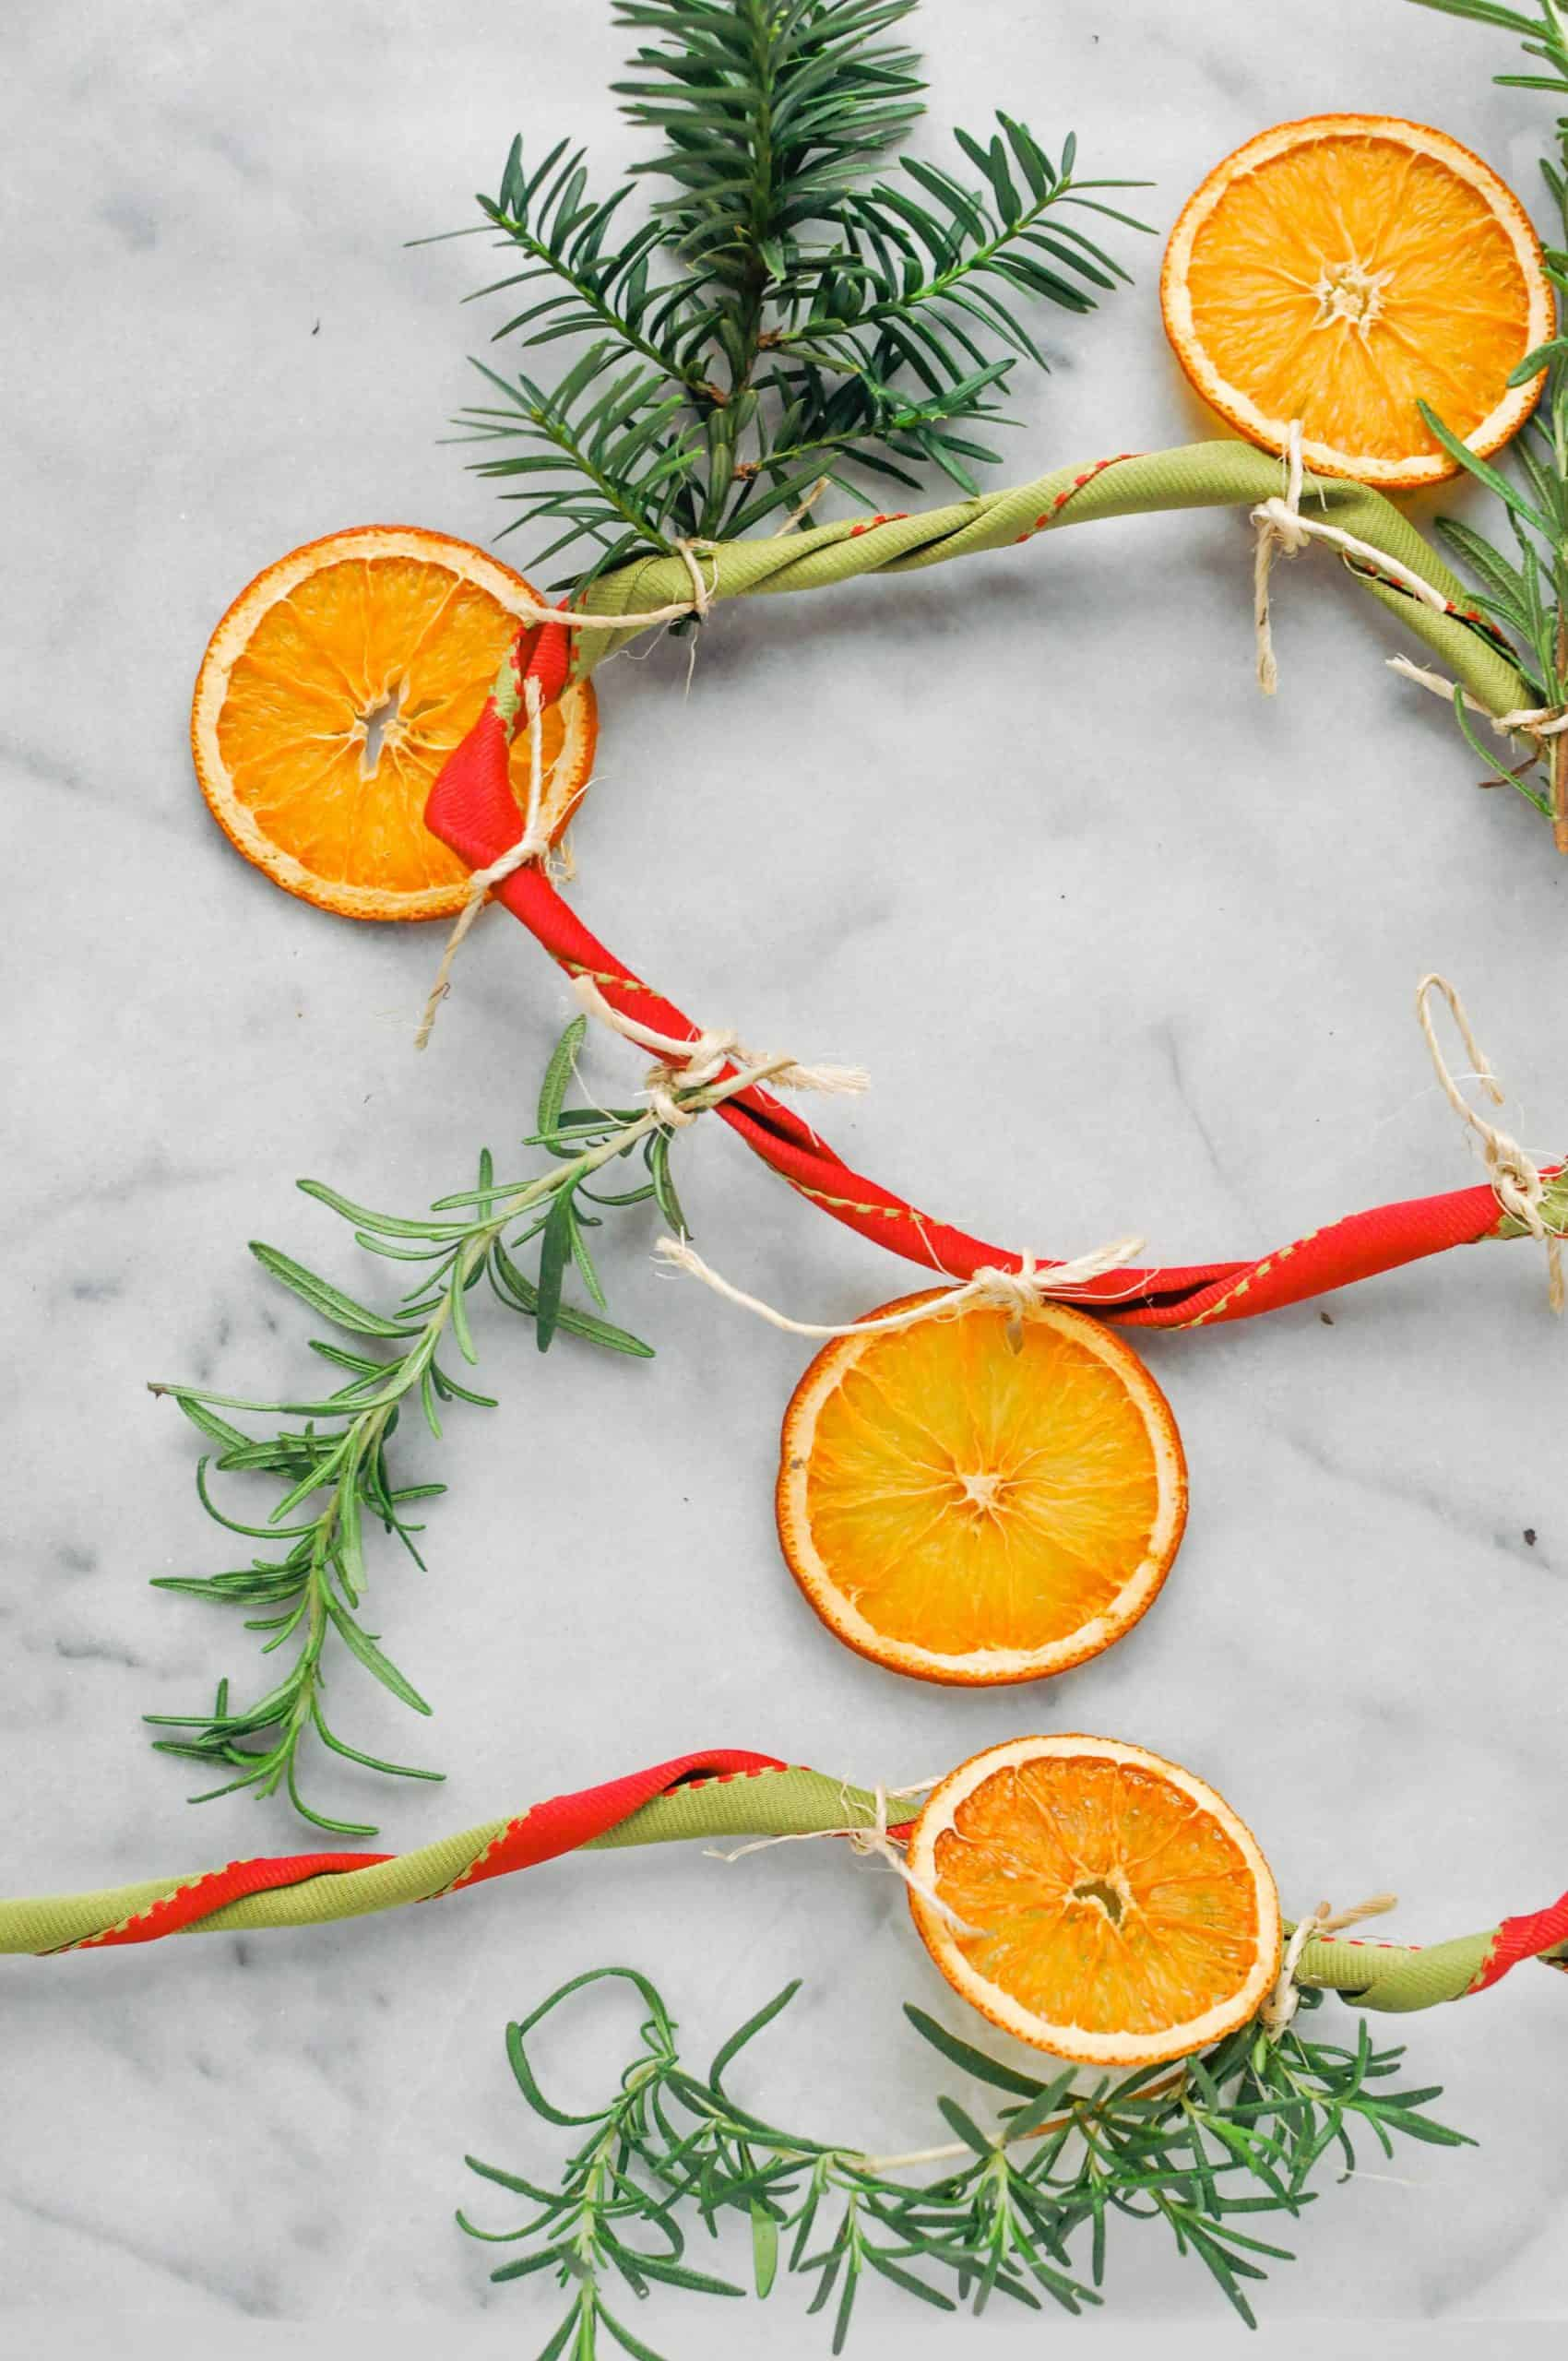 citrus, rosemary, evergreen garland